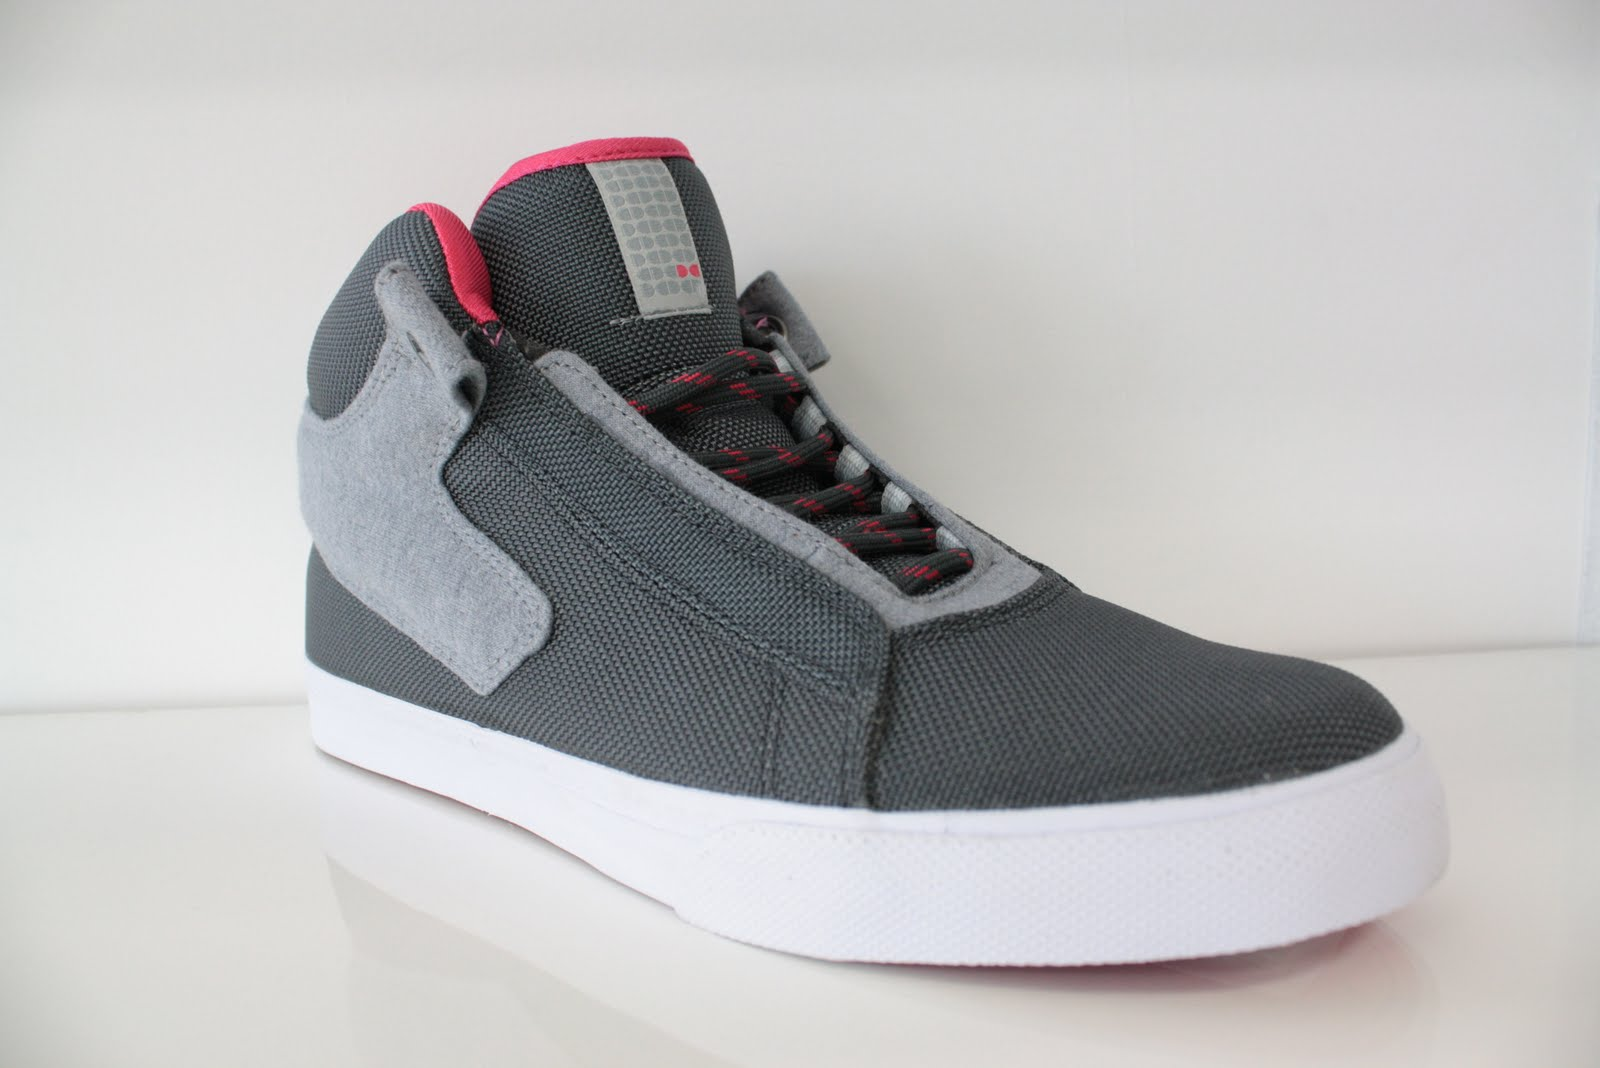 dr jays stores new dc shoes district 4 tx available now